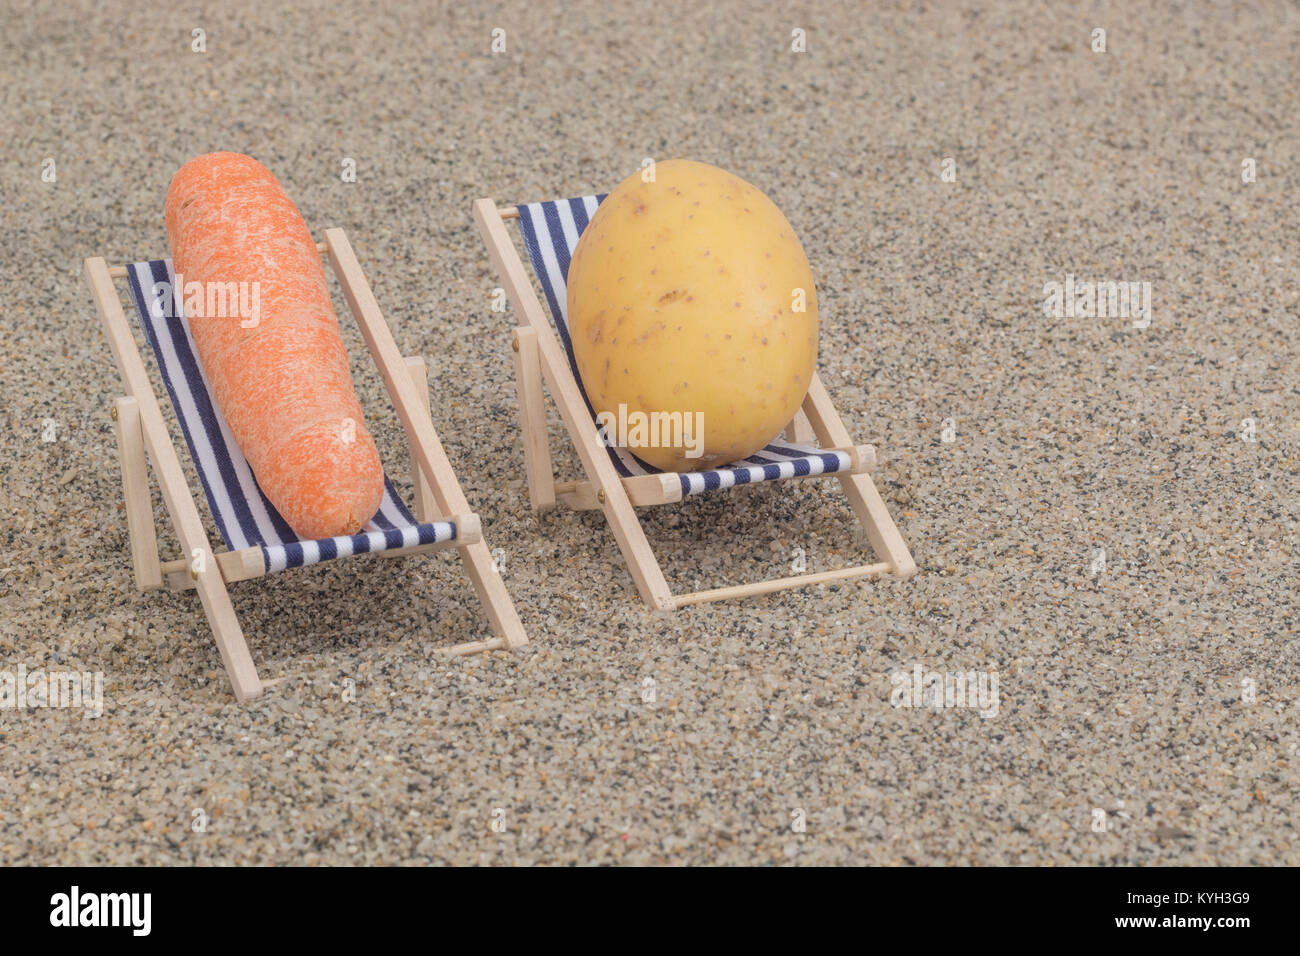 New potato and small carrot on toy deckchairs on sand - as visual metaphor for concept of 'couch potato' - Stock Image